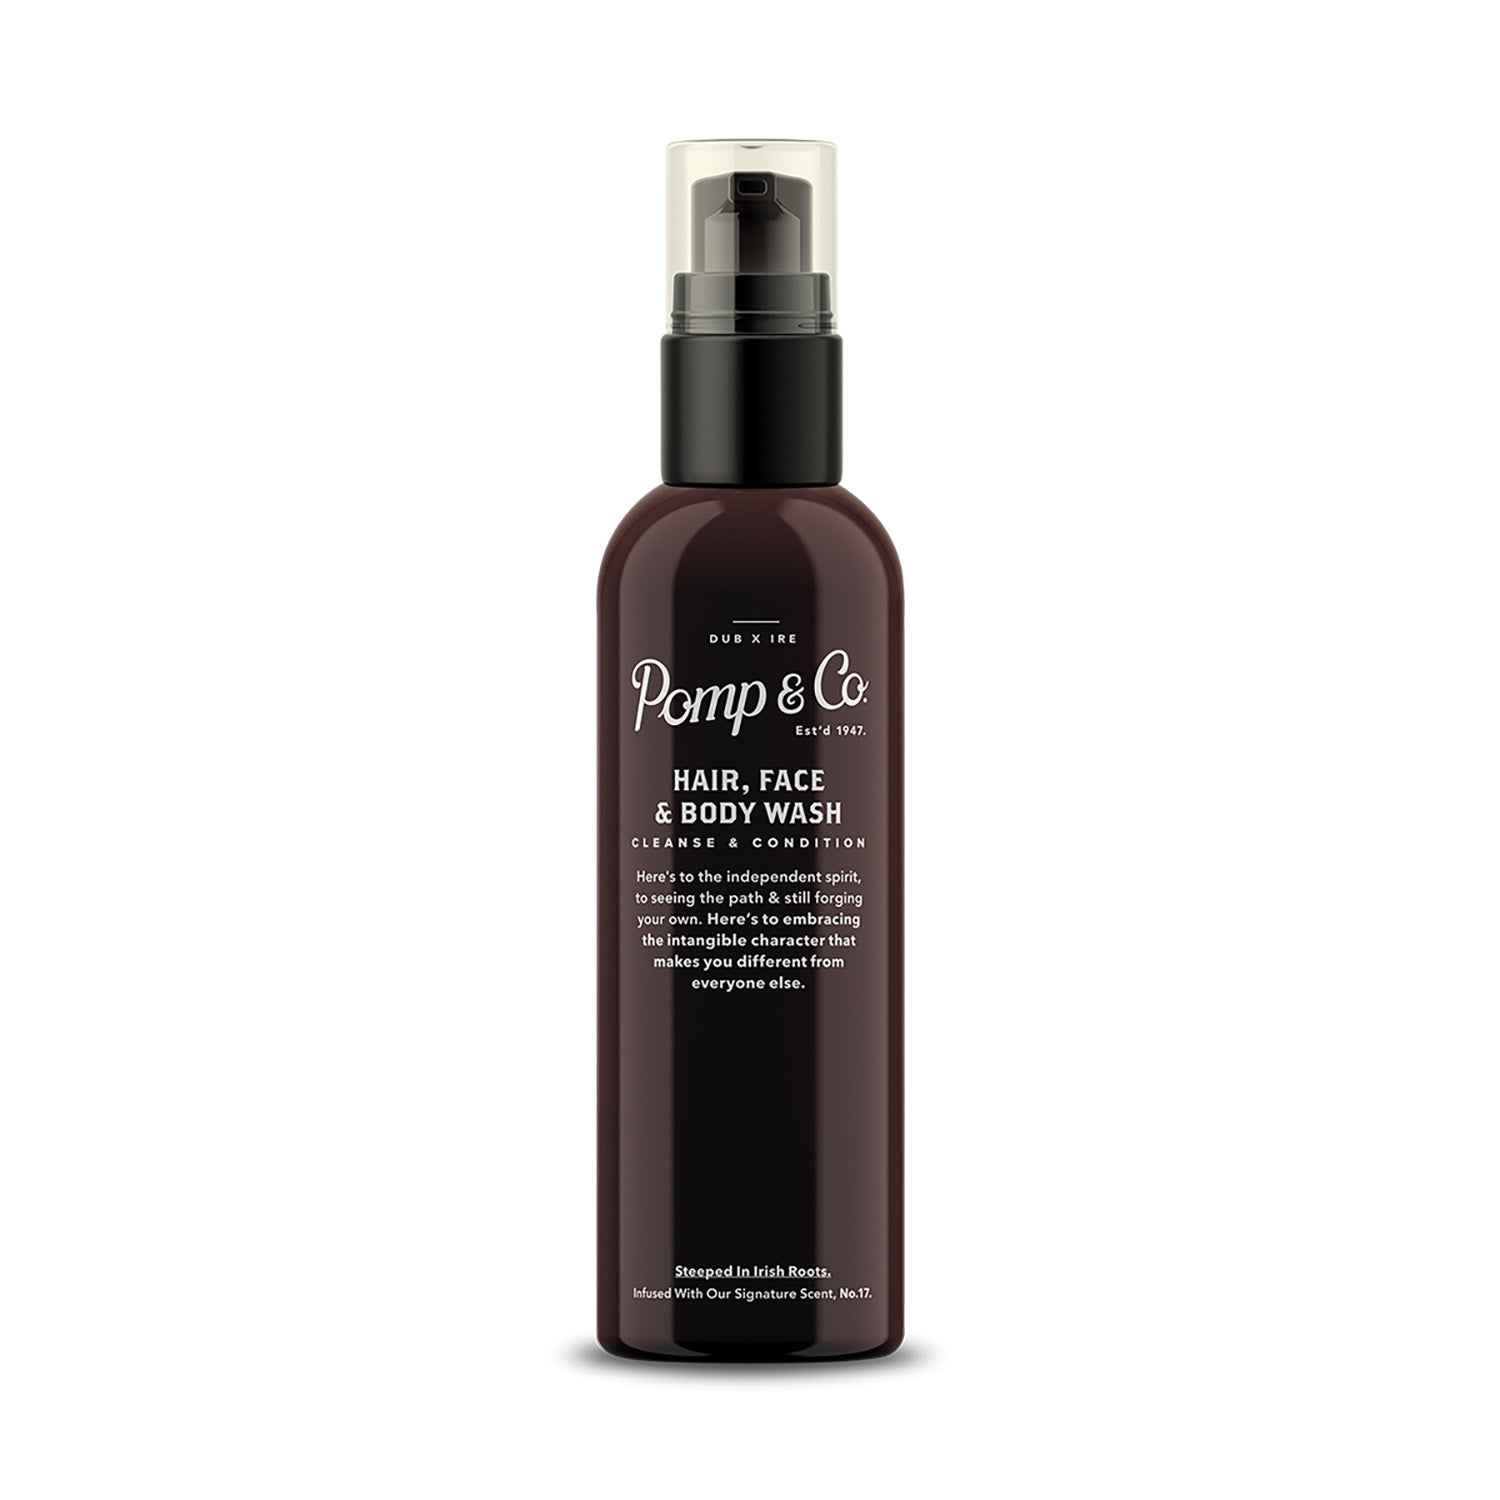 Pomp & Co - Hair, Face & Body Wash